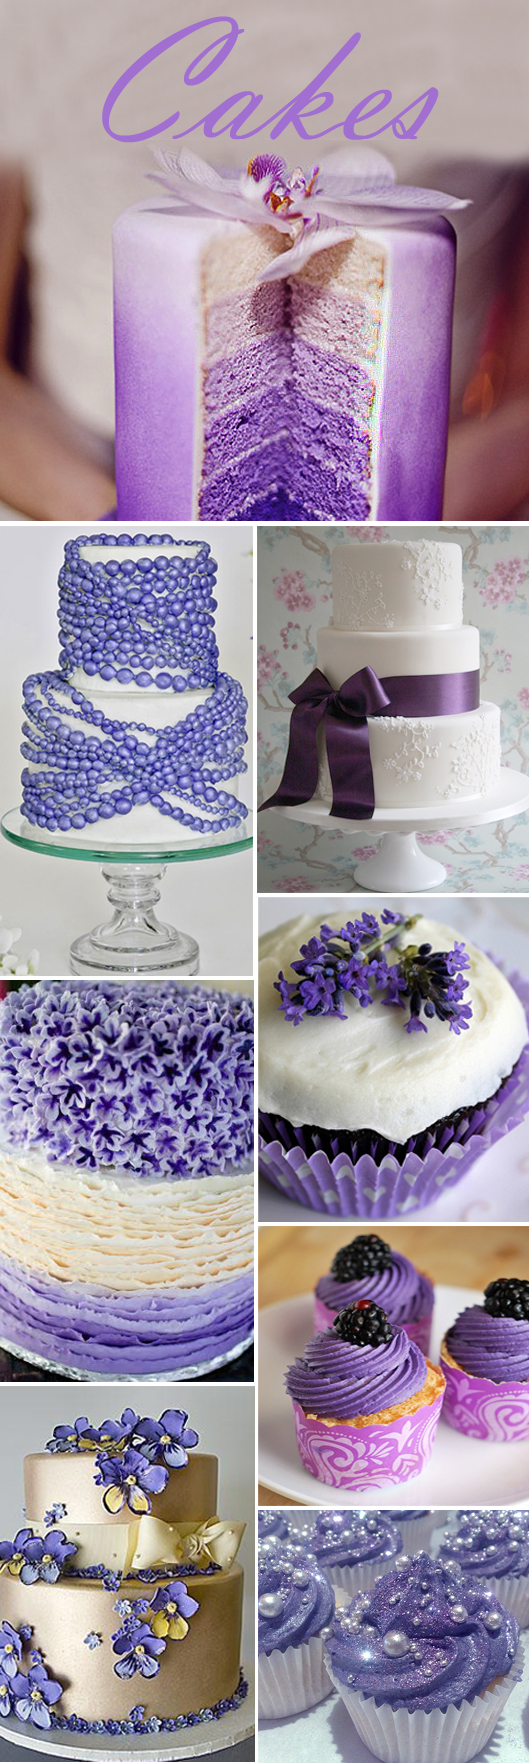 Purple Cake Collage